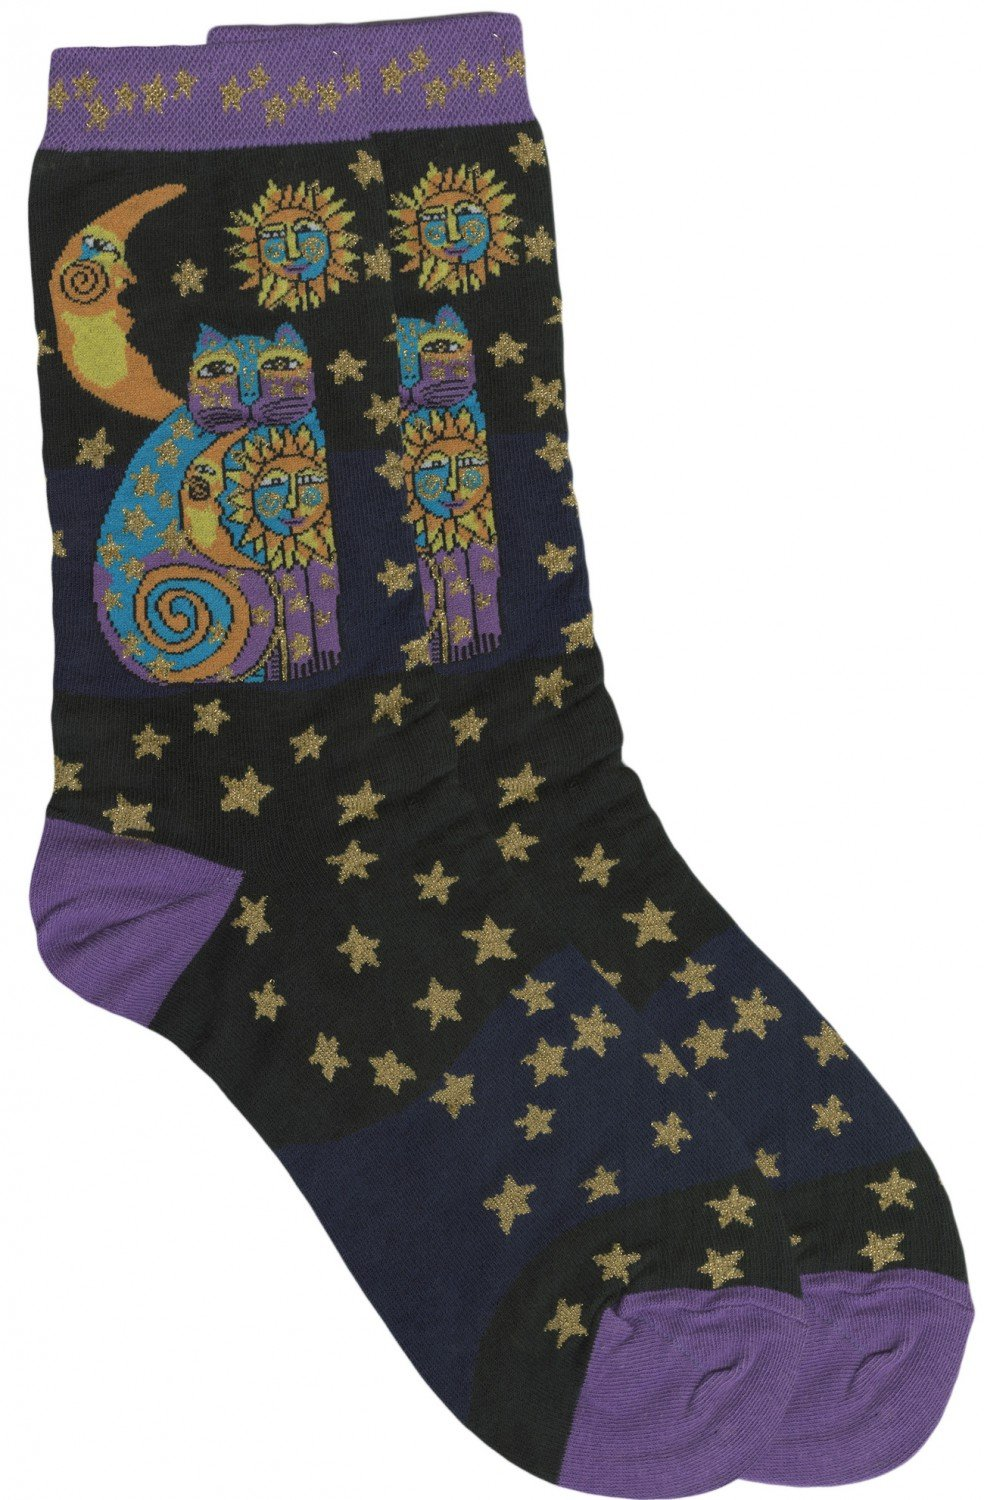 Laurel Burch Socks Celestial Cat Black